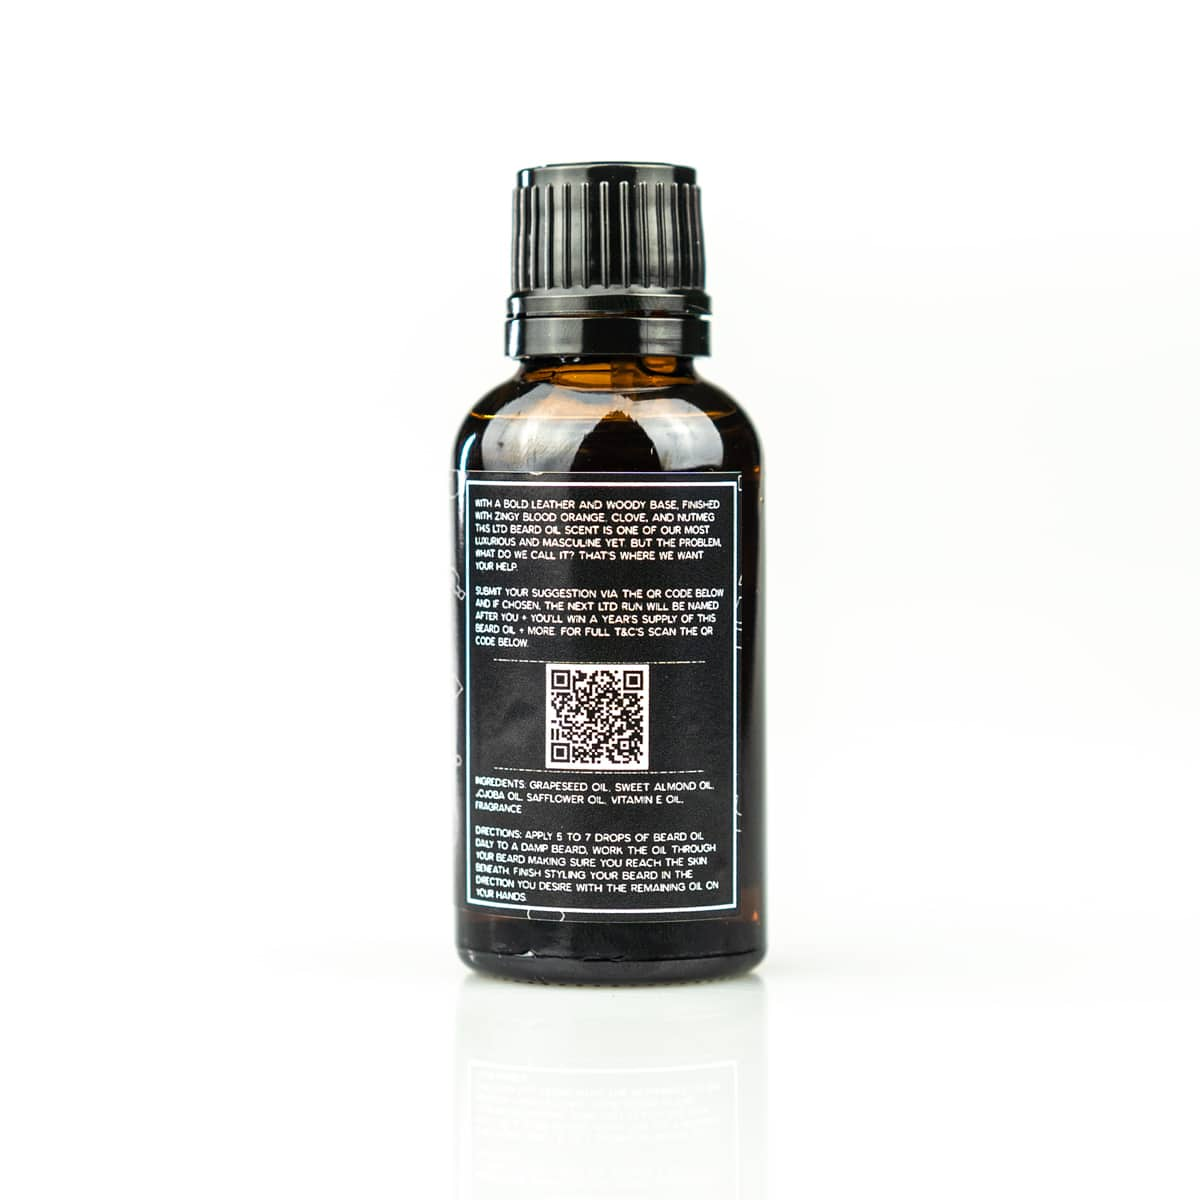 Name This Beard Oil to Win a Years Supply 25ml